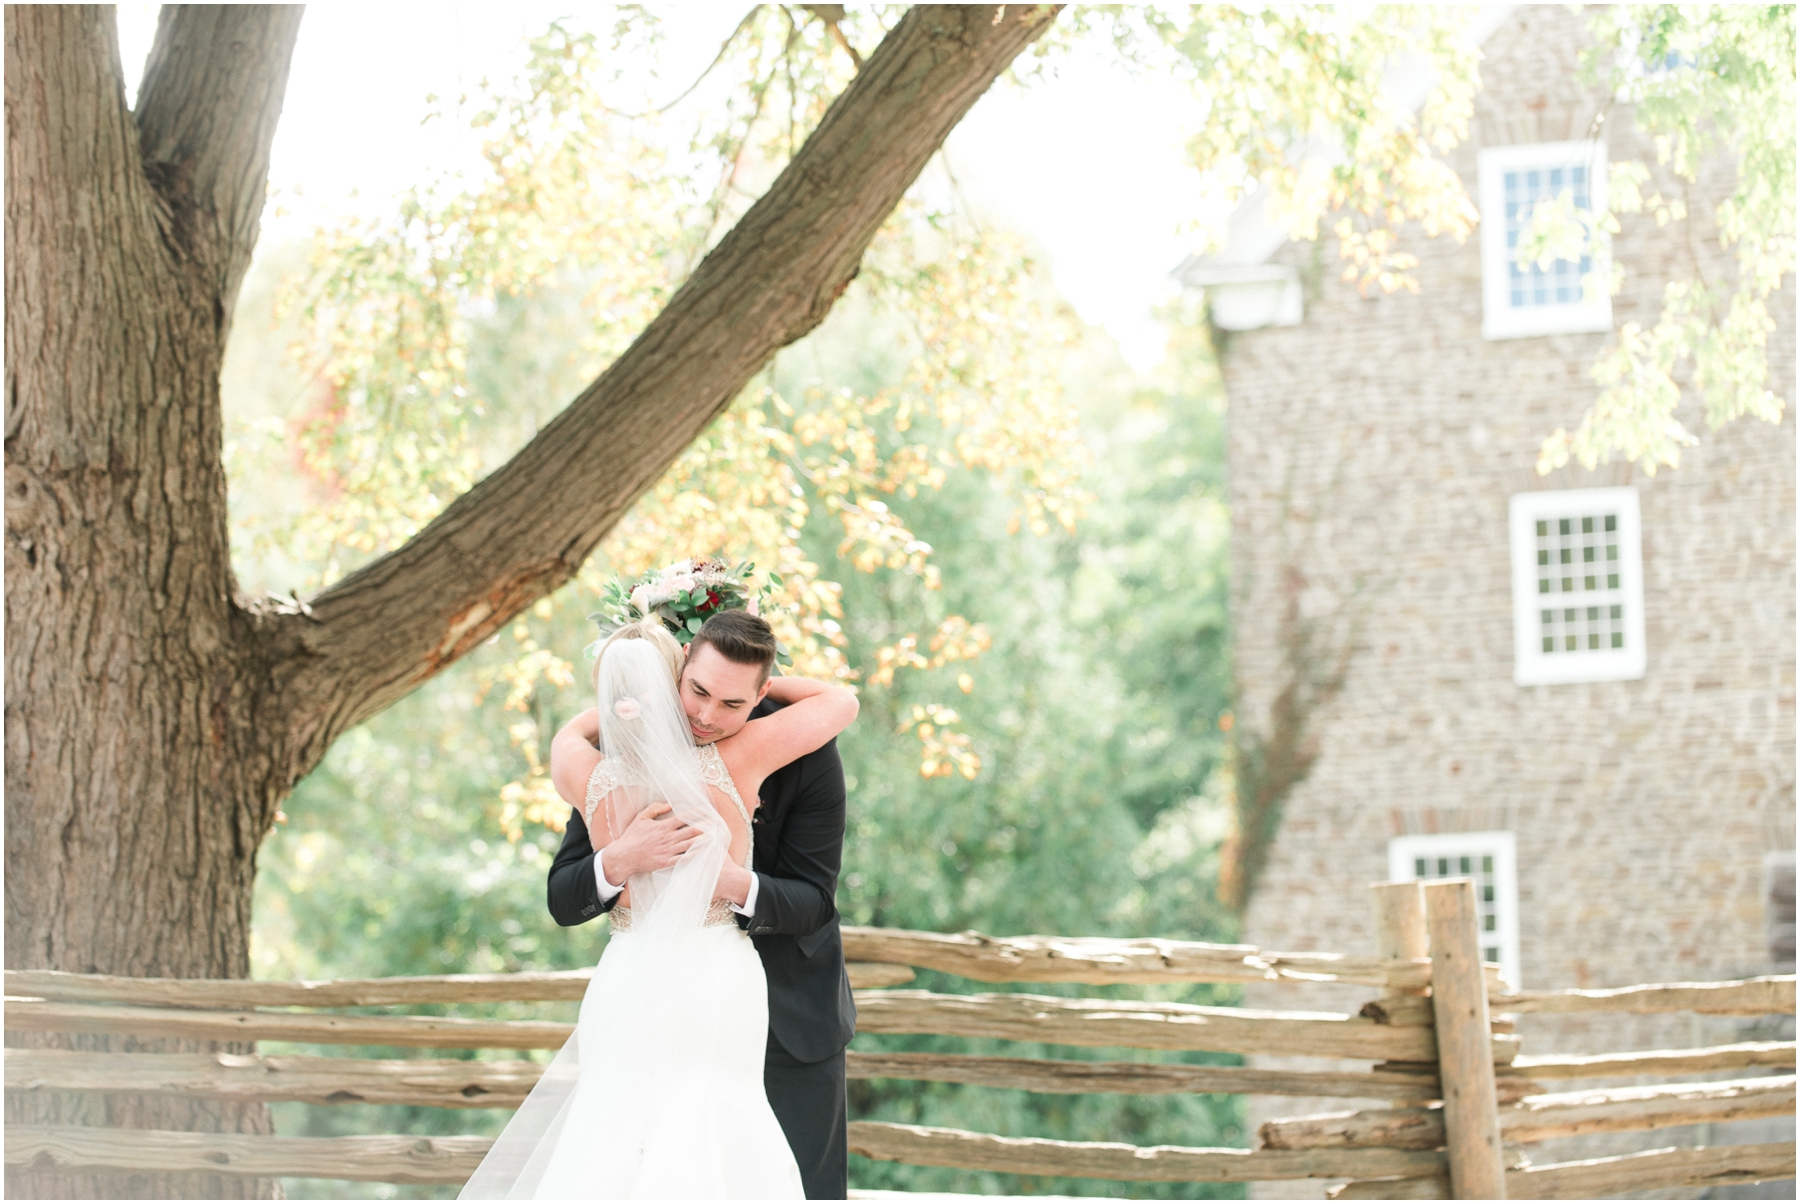 Black Creek Pioneer Village, Toronto Wedding- Precious Photography by Courtney McIntosh Becky & Andy_0146